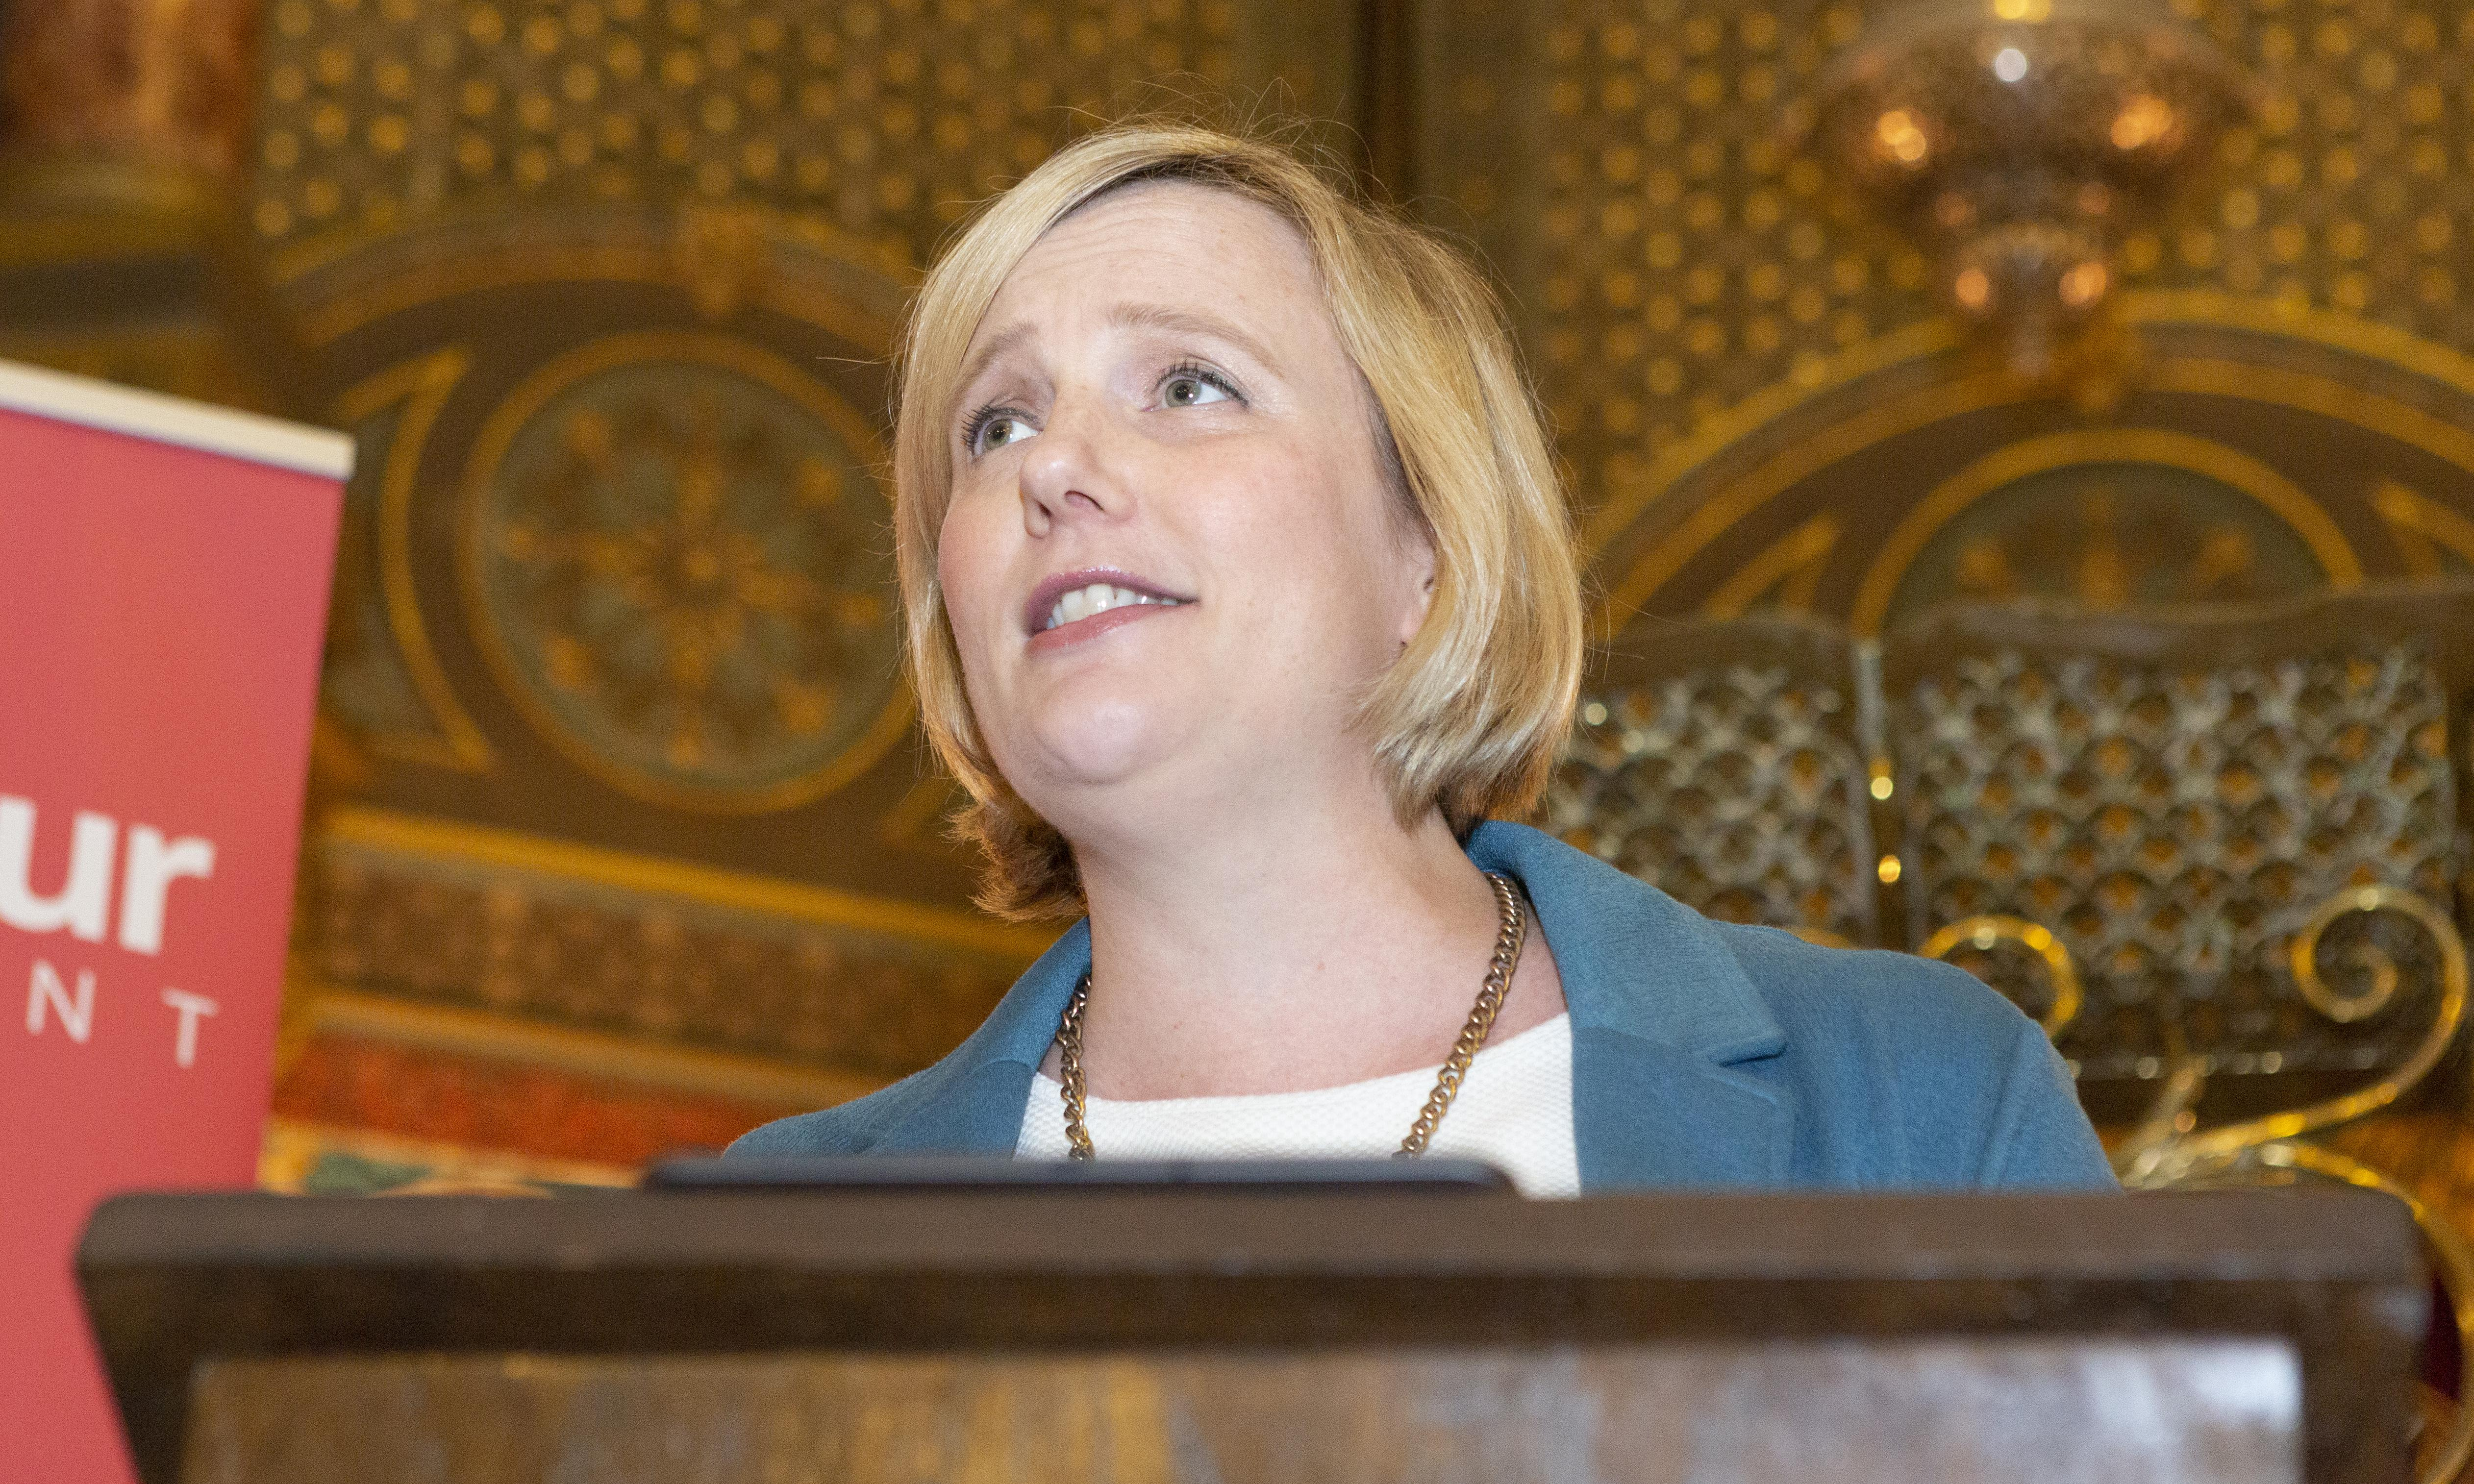 Police investigate 'extremist' targeting of Stella Creasy by anti-abortion group